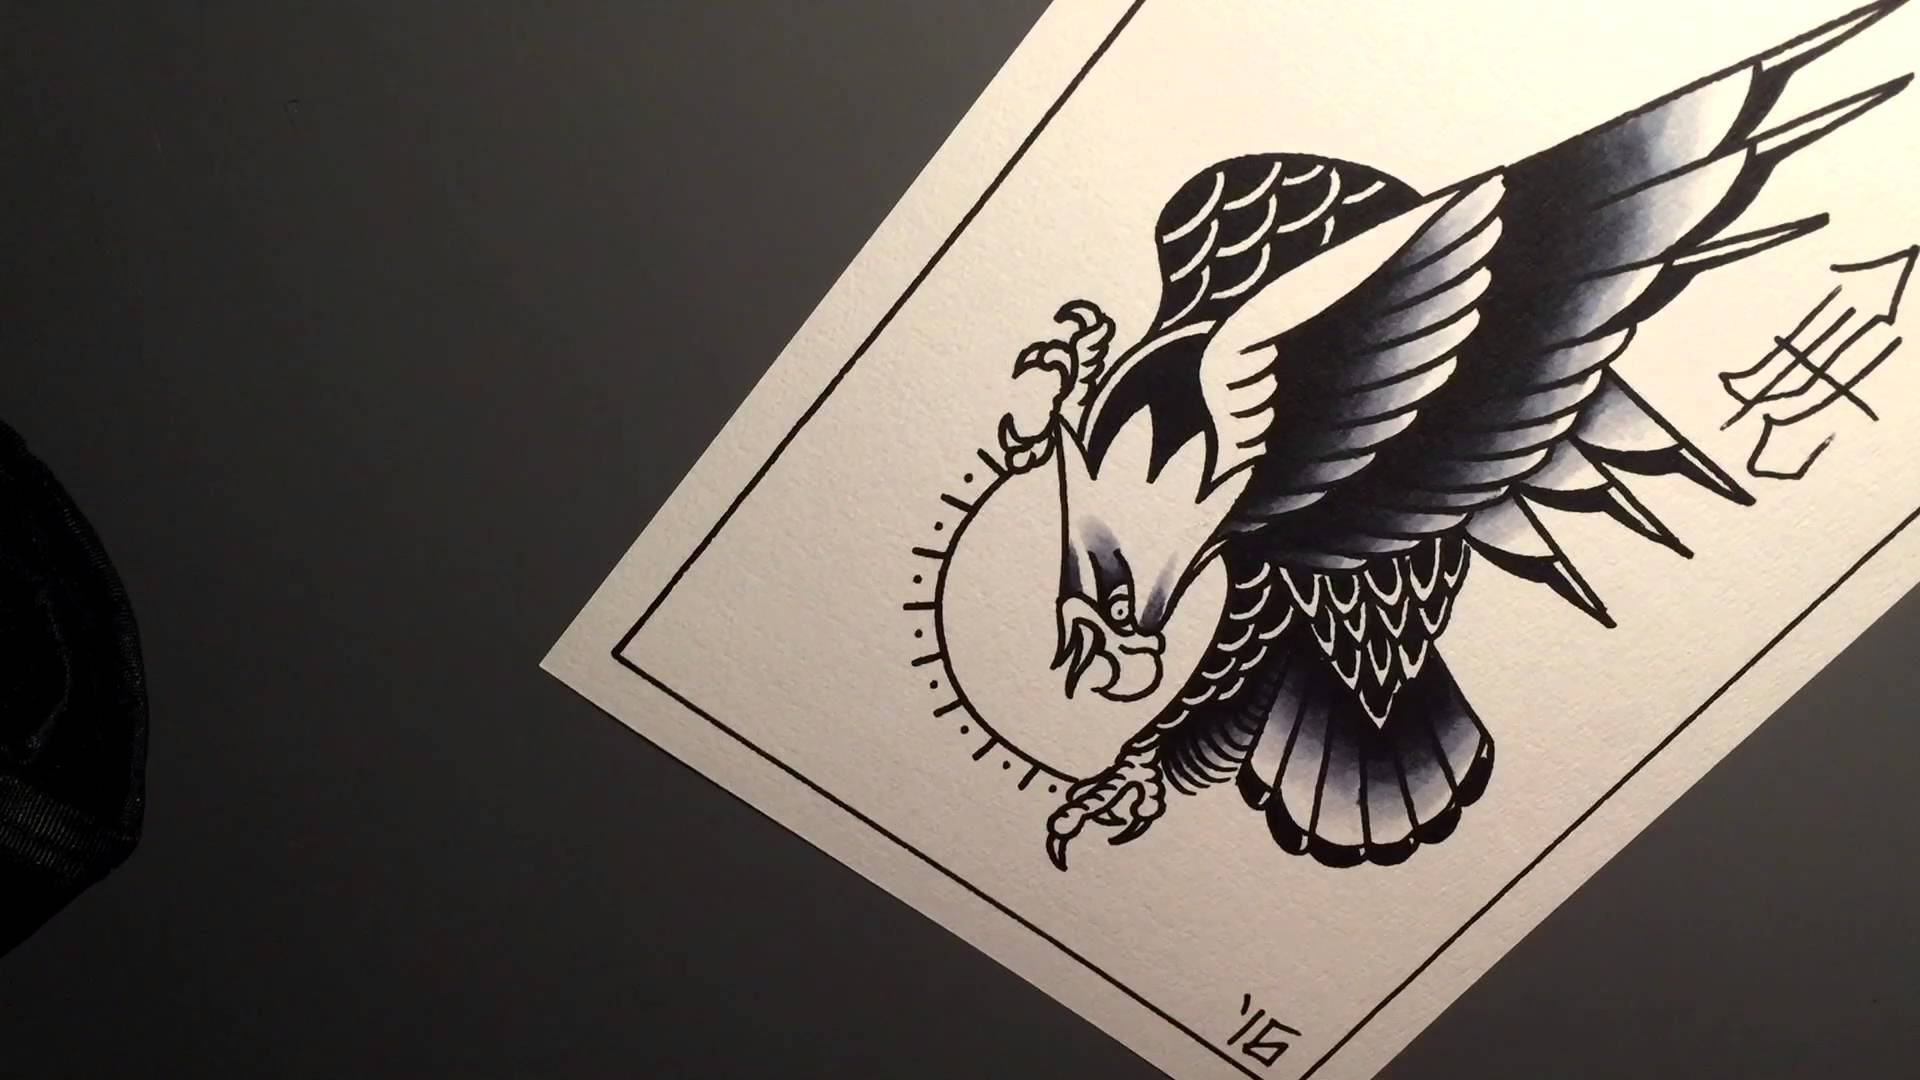 Traditional Flower Line Drawing : Tattoo flash drawing at getdrawings.com free for personal use